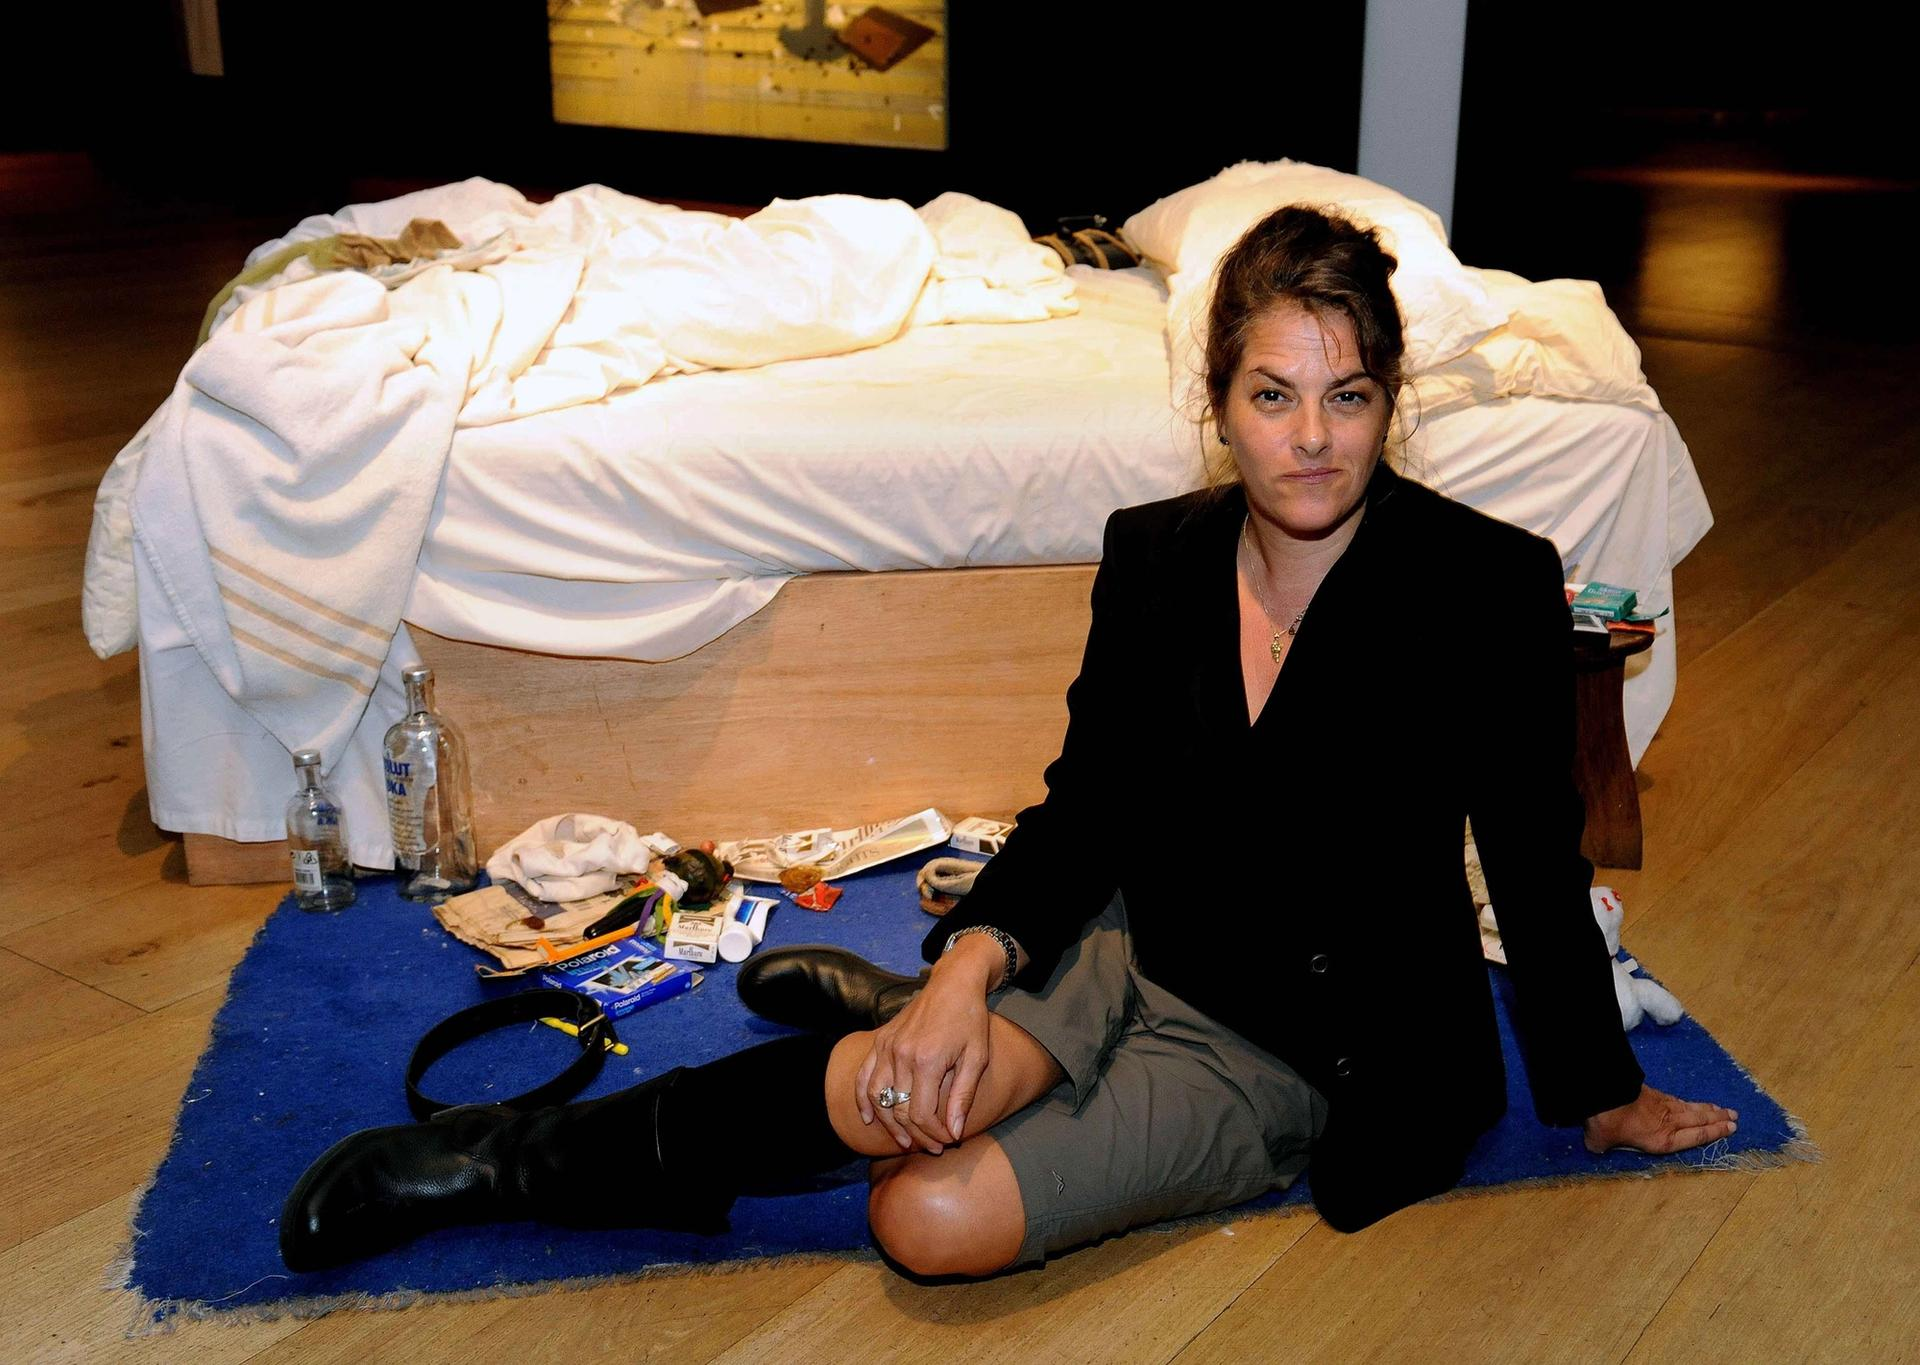 Tracey Emin with her My Bed at Christie's, London Credit: PA Images/Alamy Stock Photo